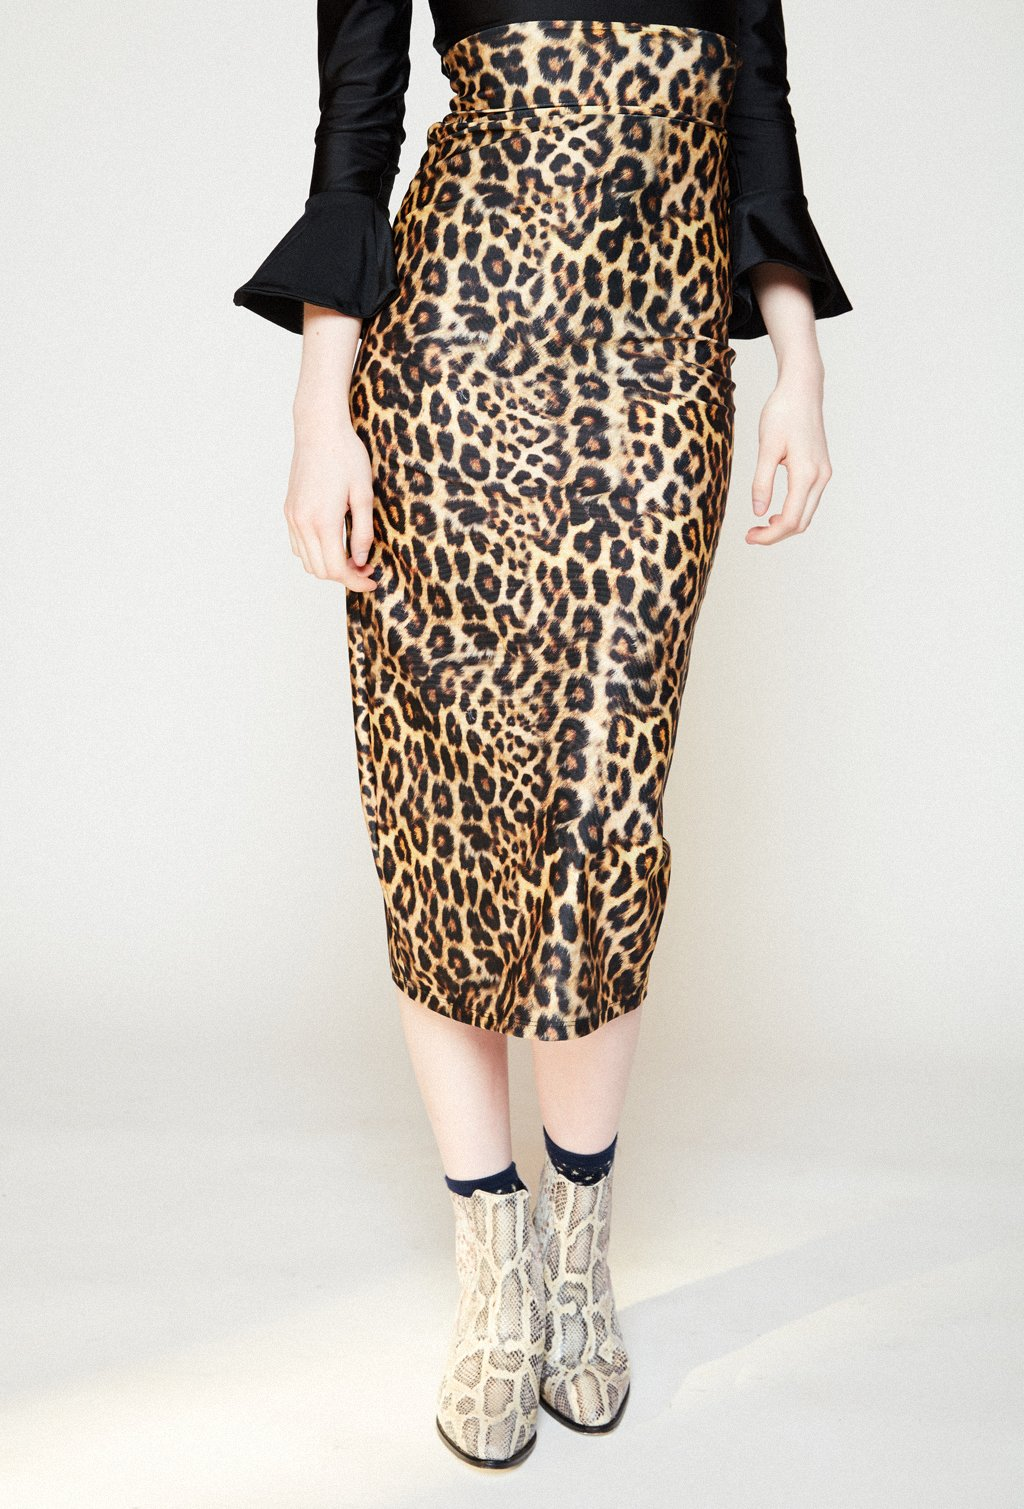 VERONICA LEOPARD SKIRT